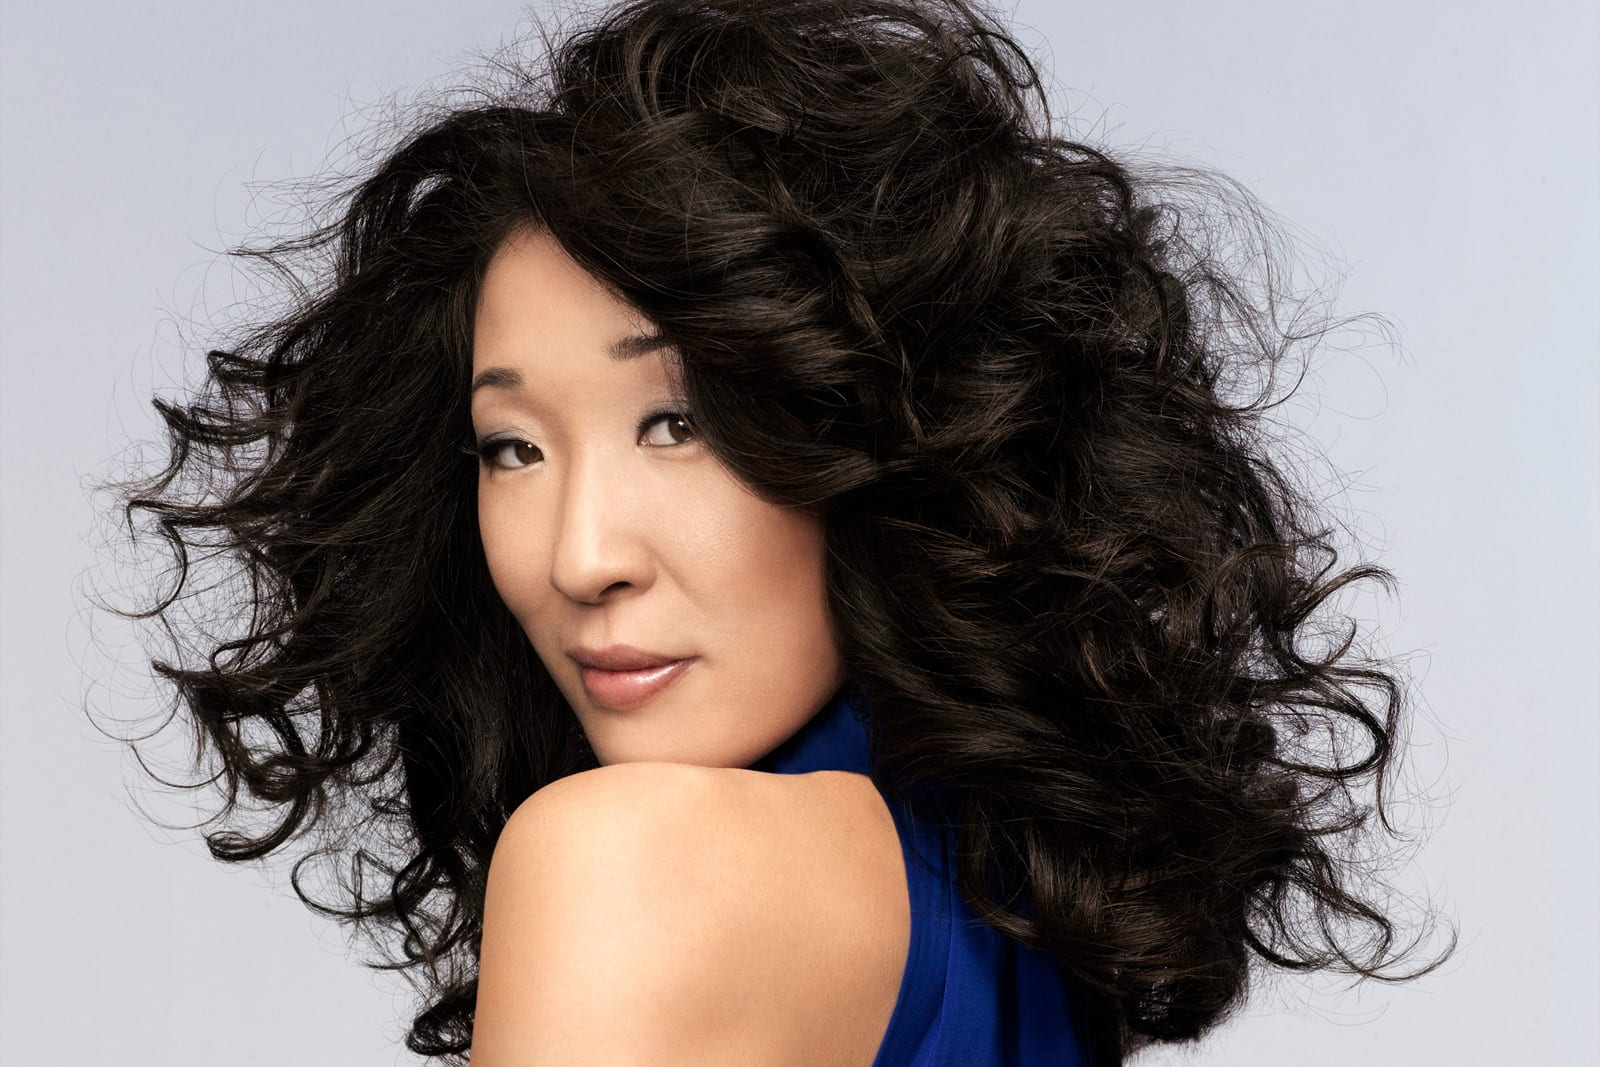 'Game of Thrones' duo will co-produce a Netflix series with Sandra Oh